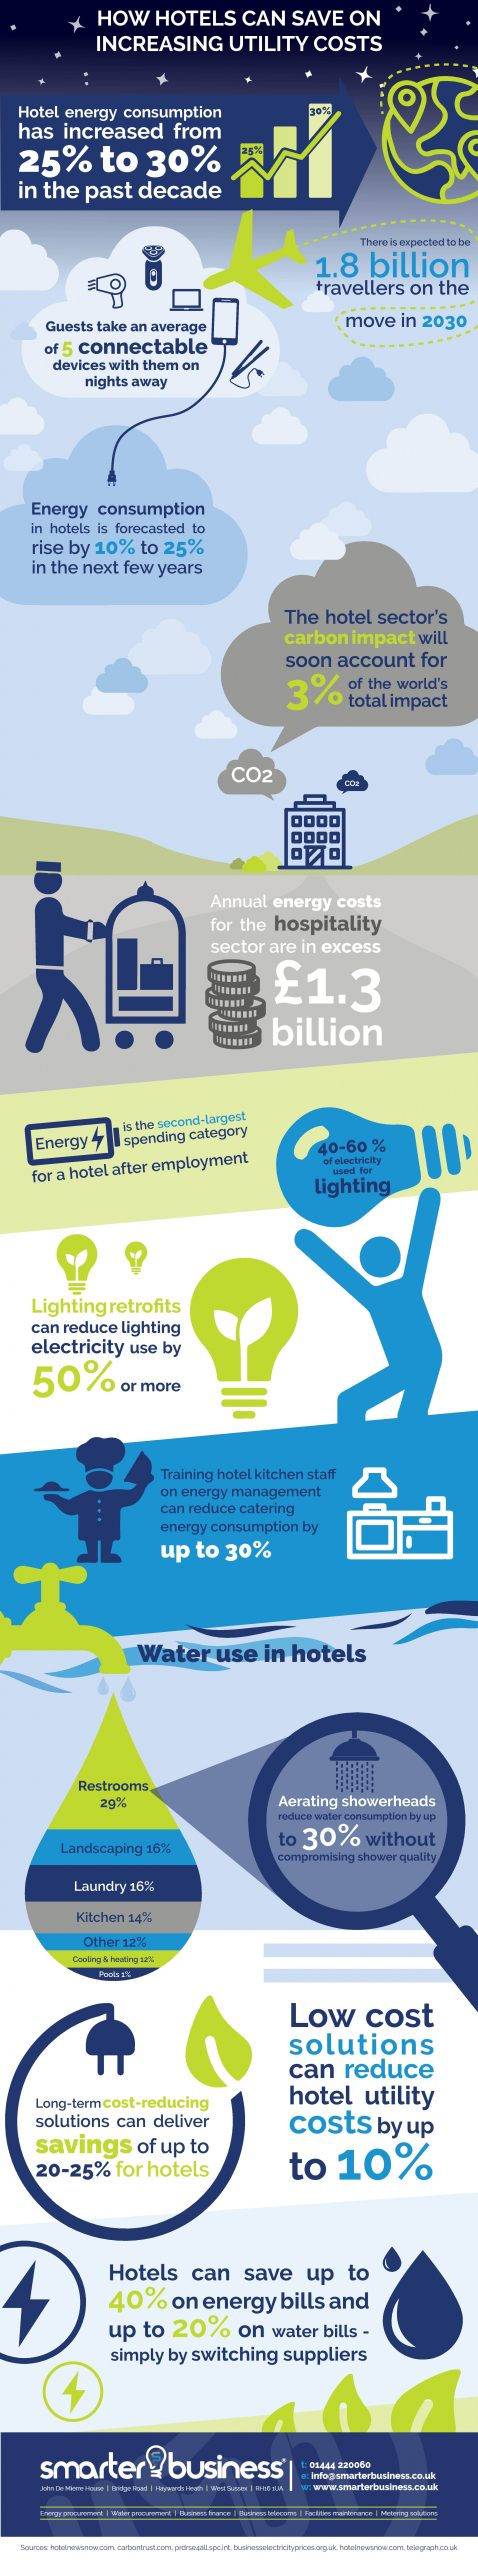 Hotels save on utilities - Infographic